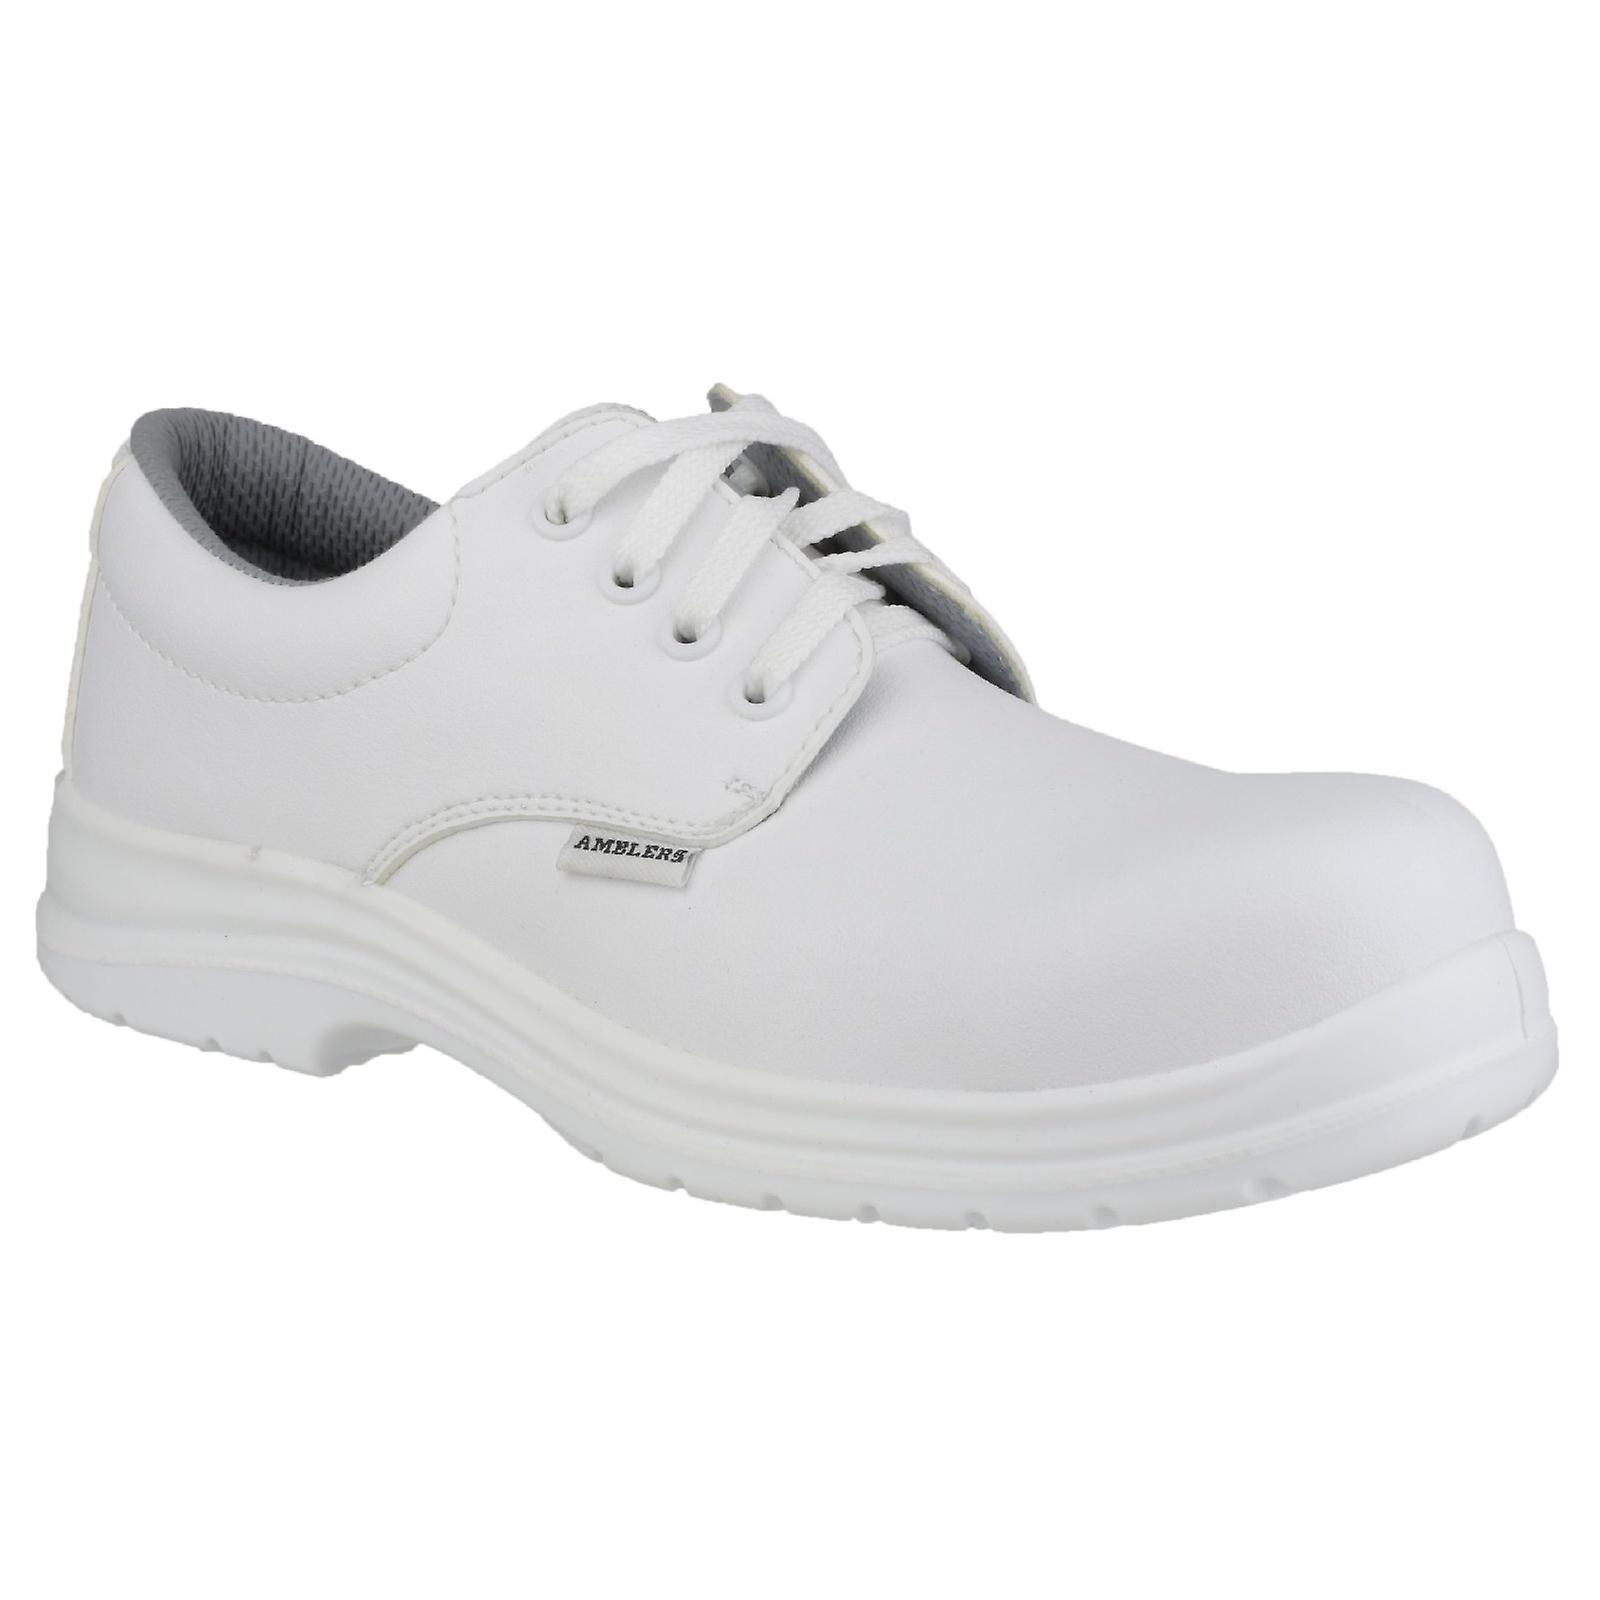 Amblers FS511 White Unisex Safety Safety Unisex Shoes a04201